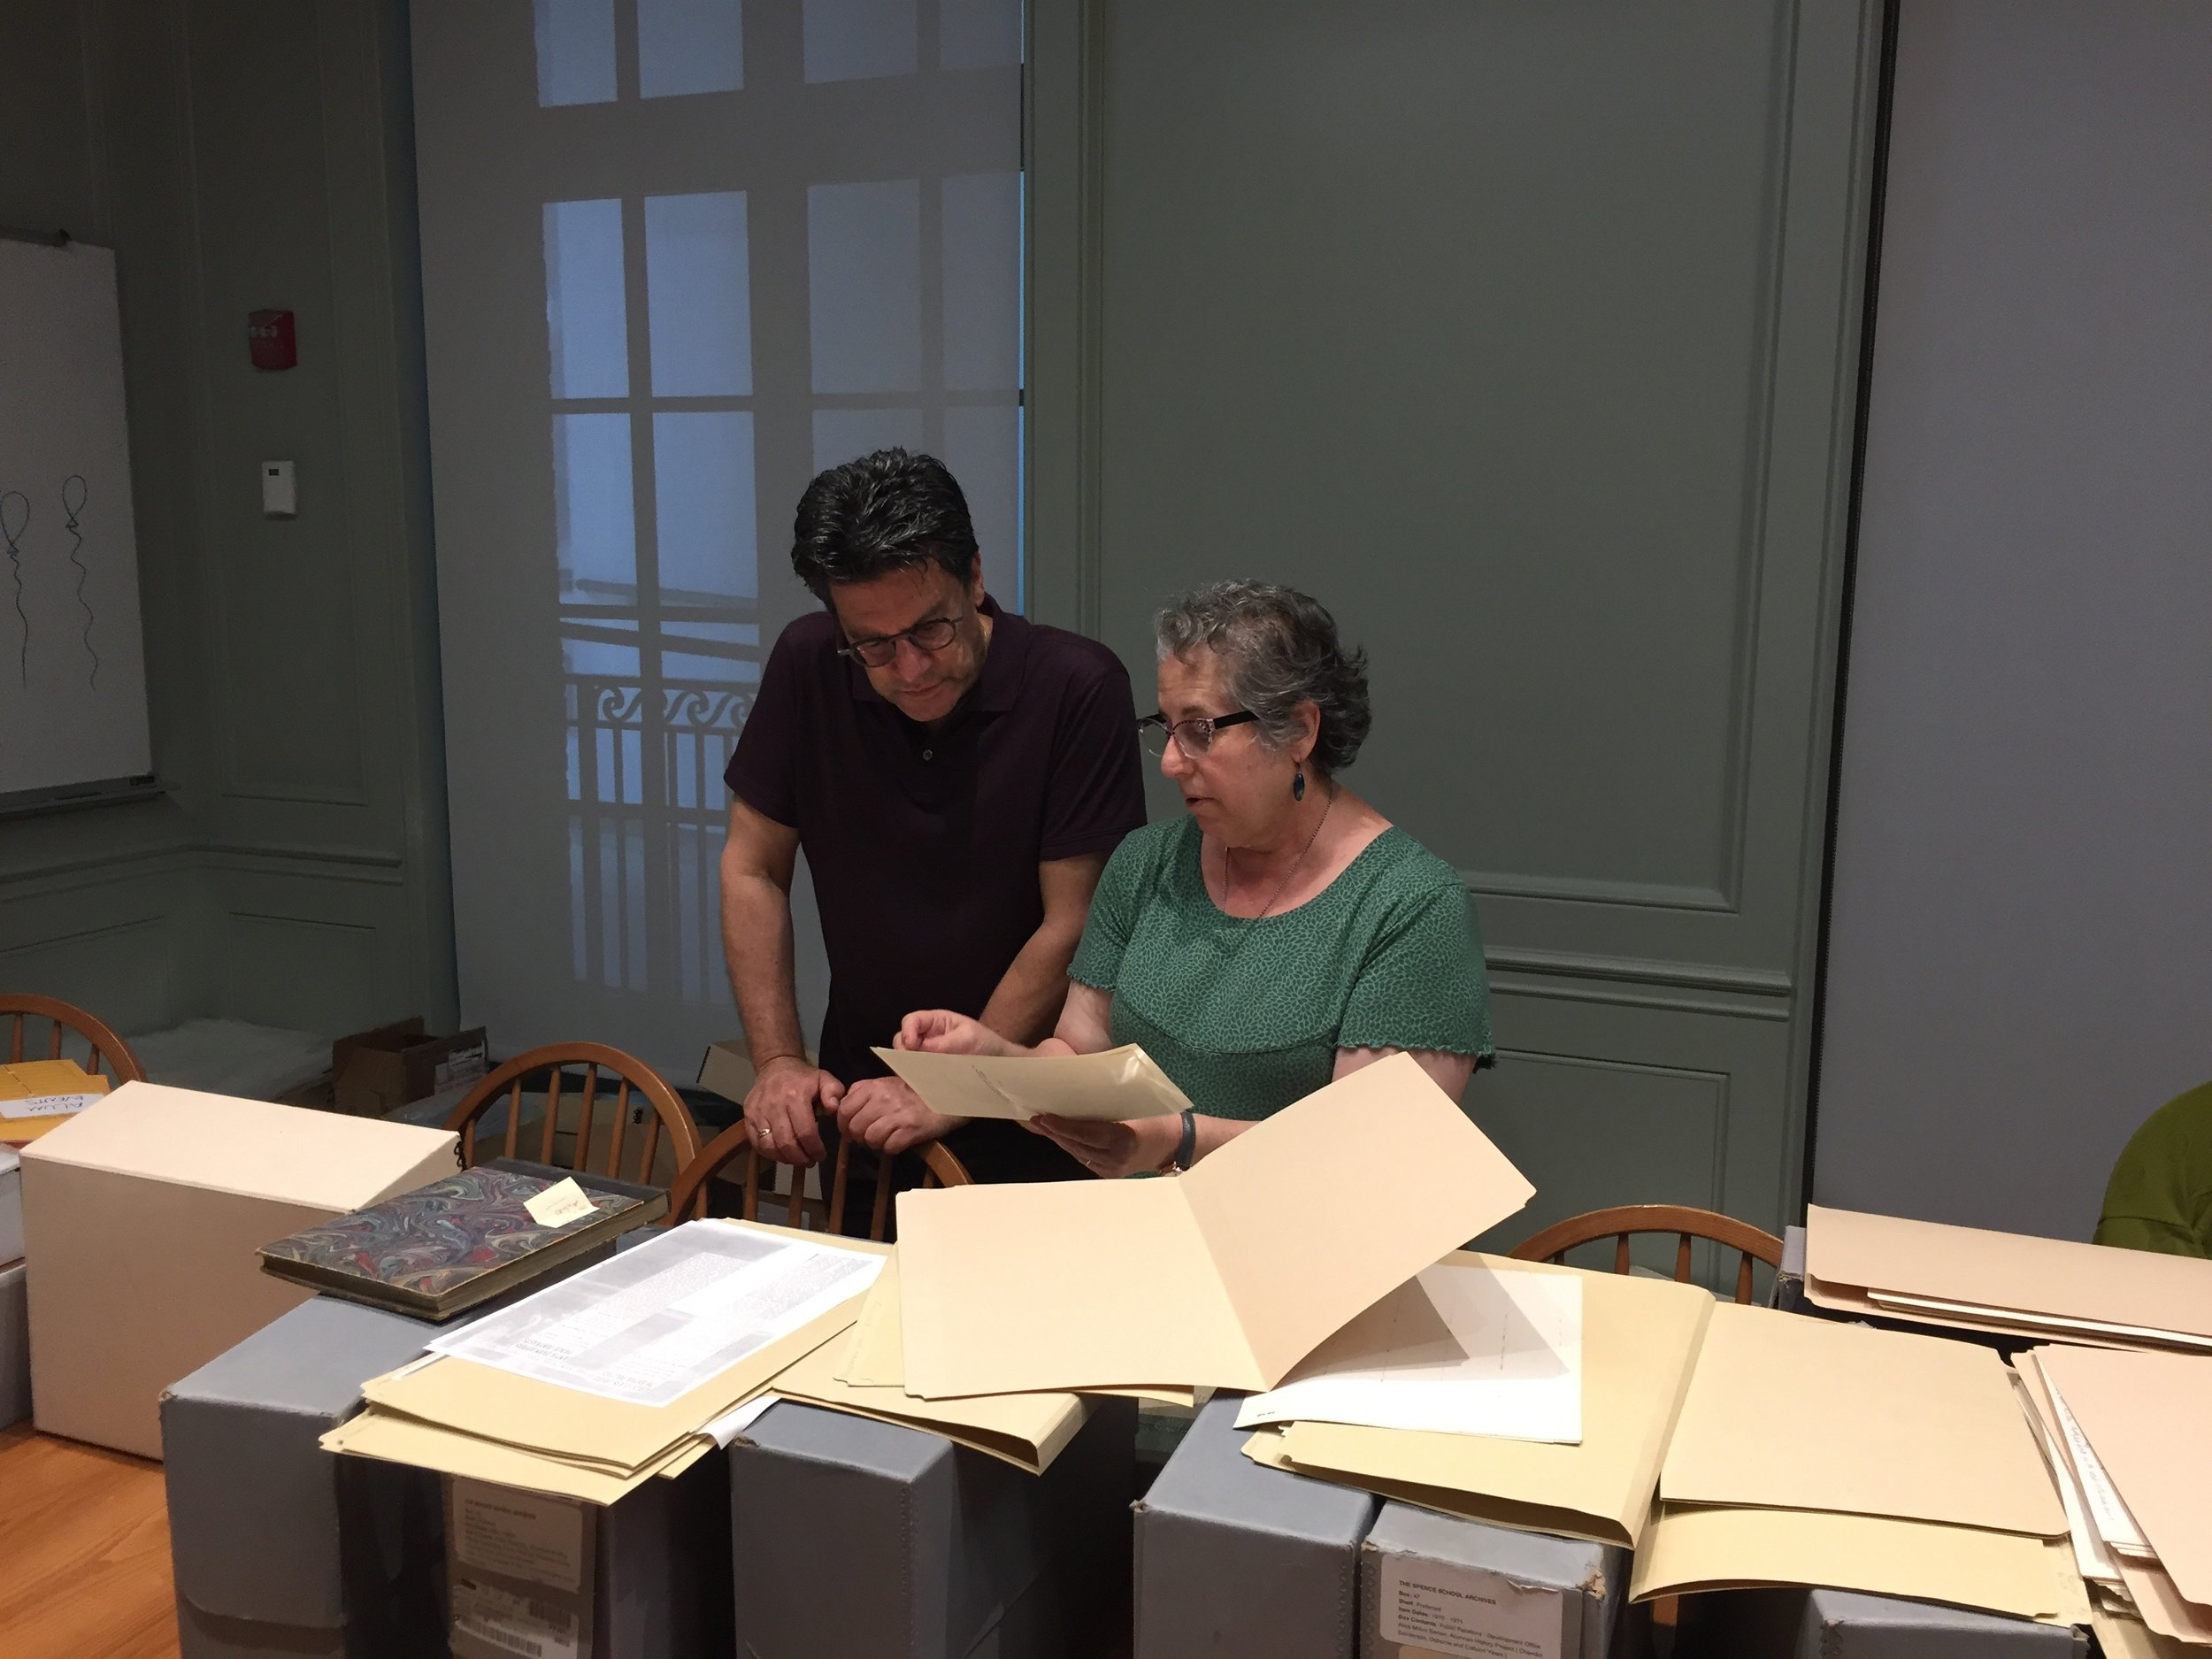 Curators David Deitch and Lisa Kaplan reviewing materials this summer (2019) in preparation for cataloguing and digitizing.